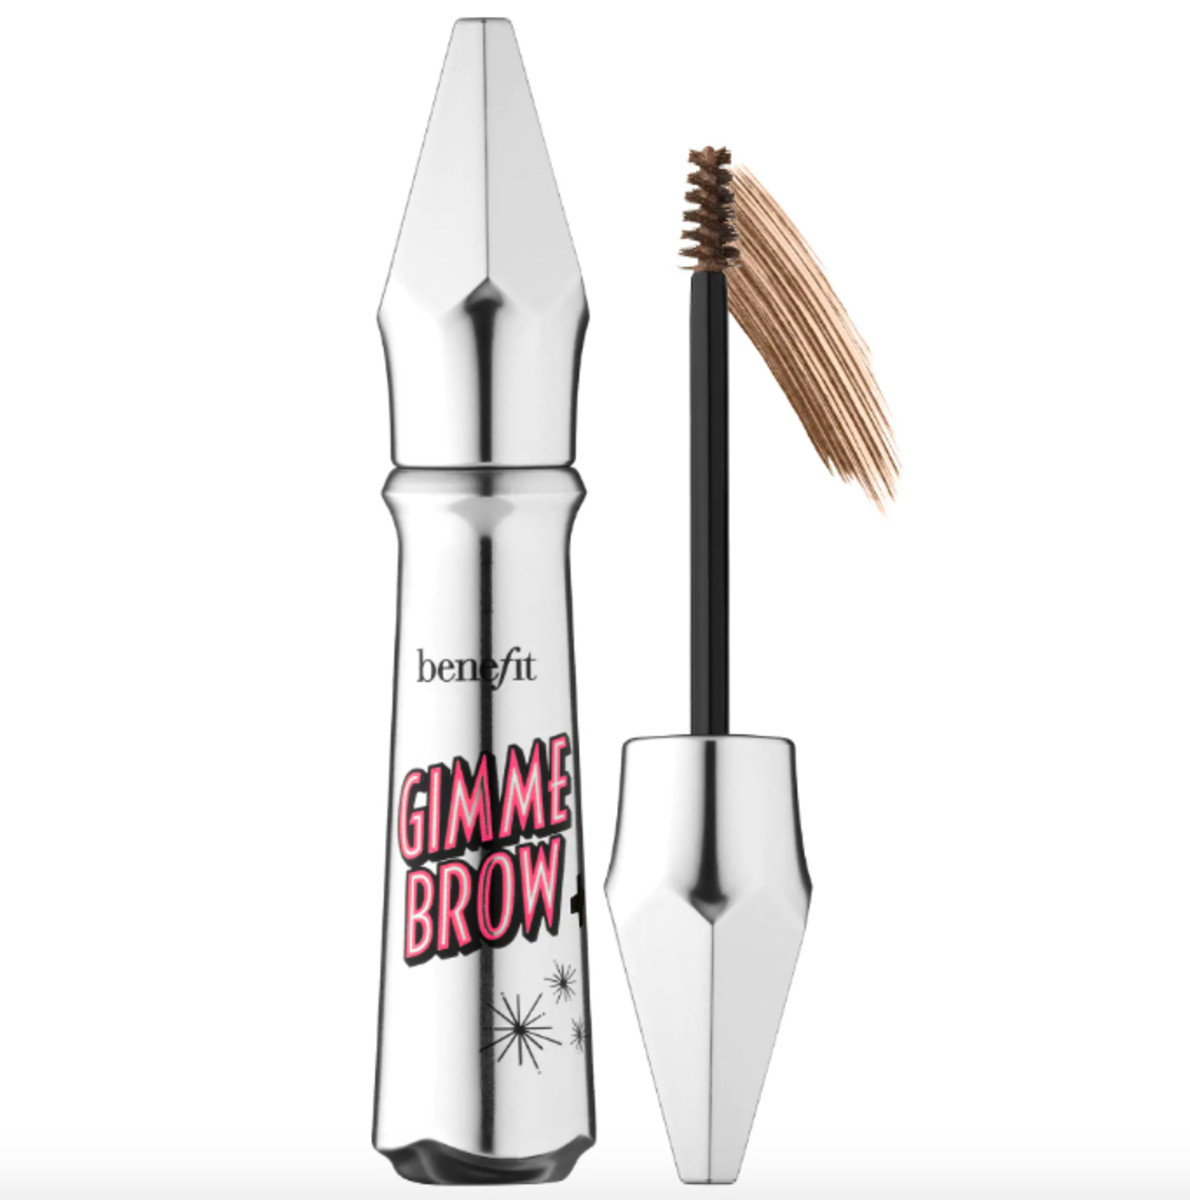 Benefit Cosmetics Gimme Brow+ Volumizing Eyebrow Gel, $24, available here.